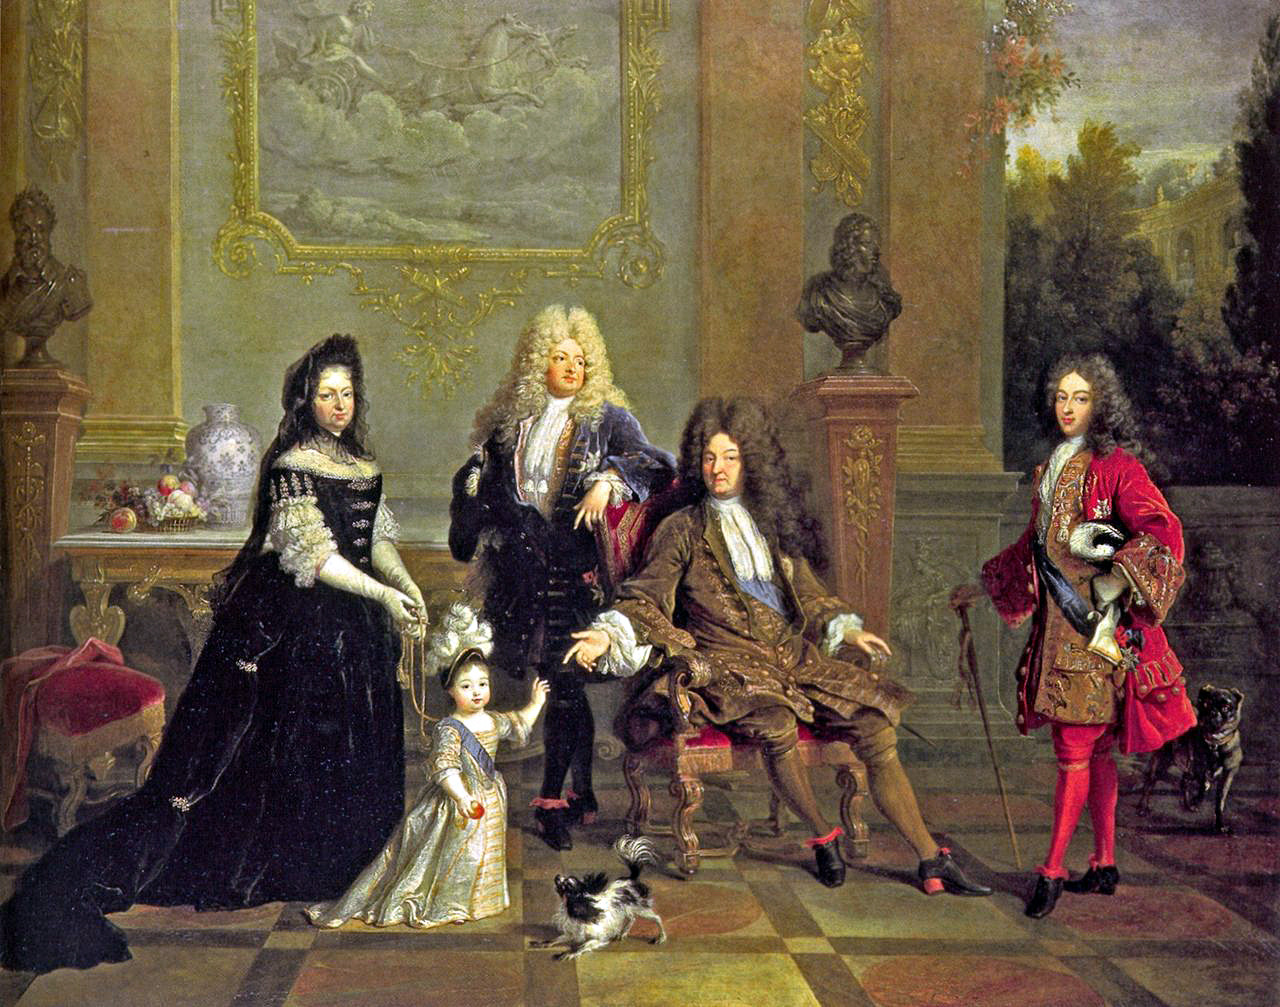 """A composite portrait of the Bourbon succession, made in the period 1715-1720. At the centre of the portrait is the Sun King, Louis XIV, most illustrious of his dynasty. His father (Louis XIII) and grandfather (Henry IV) are shown as busts. At the King's right is his son, Louis the Grand Dauphin; to the king's left is his eldest grandson, Louis, Duke of Burgundy. Both predeceased Louis XIV. The king gestures to his great-grandson, Louis Duke of Brittany, symbolising the older man's approval of his young heir. Madame de Ventadour, the young duke's governess (and the only non-royal in the painting) holds her charge's reins. Her presence references her role in """"saving"""" the dynasty in the measles epidemic of 1712."""